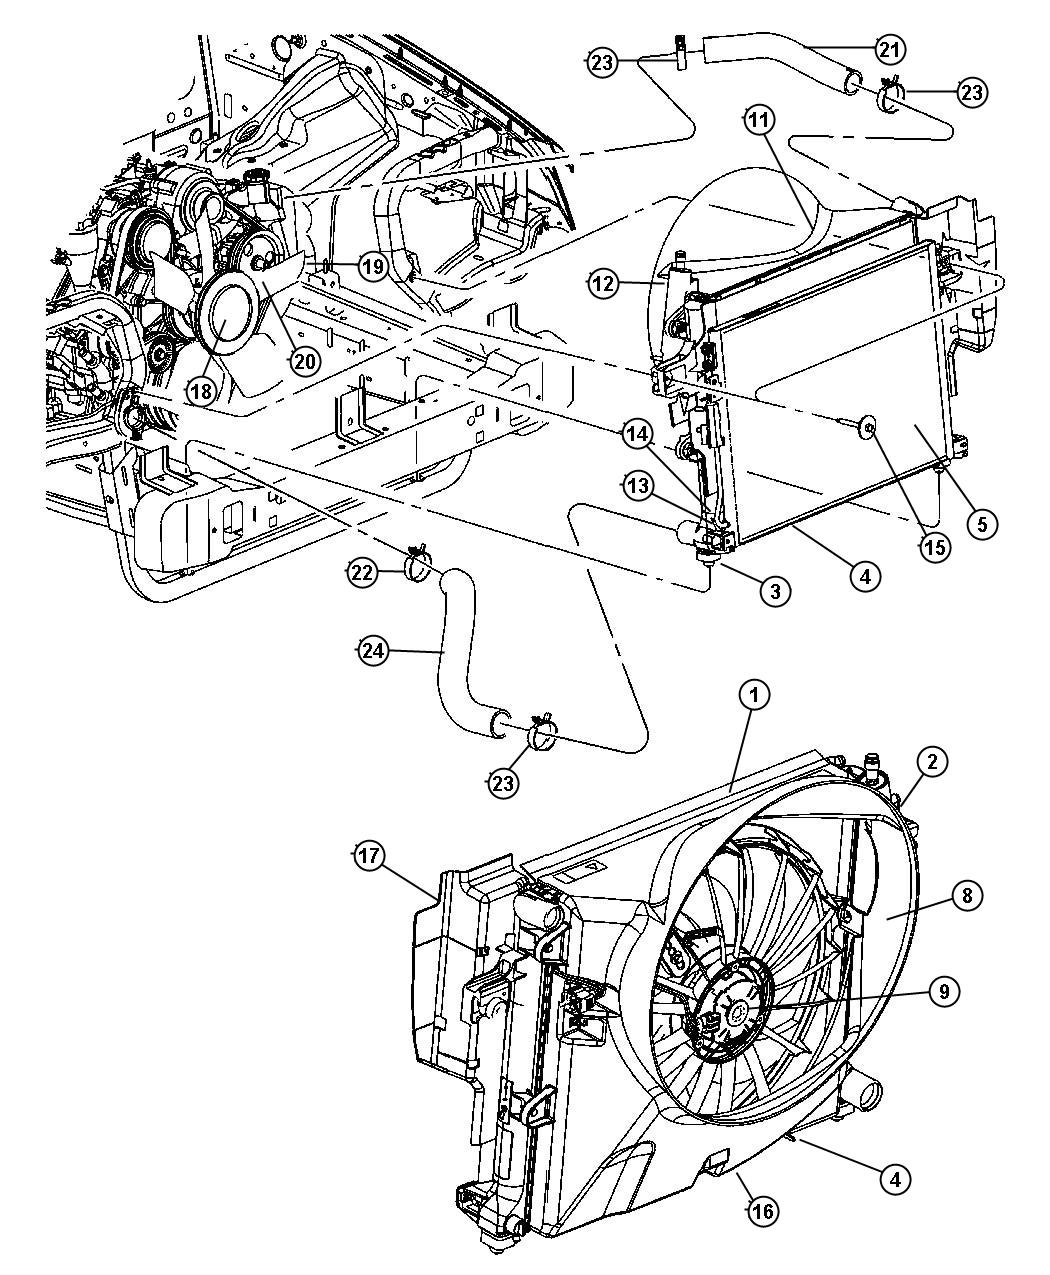 wiring diagram database  tags: #jeep wrangler 5 speed transmission#jeep  cherokee 5 speed transmission#cj5 3 speed transmission#cj5 trans cover  plate#76 jeep